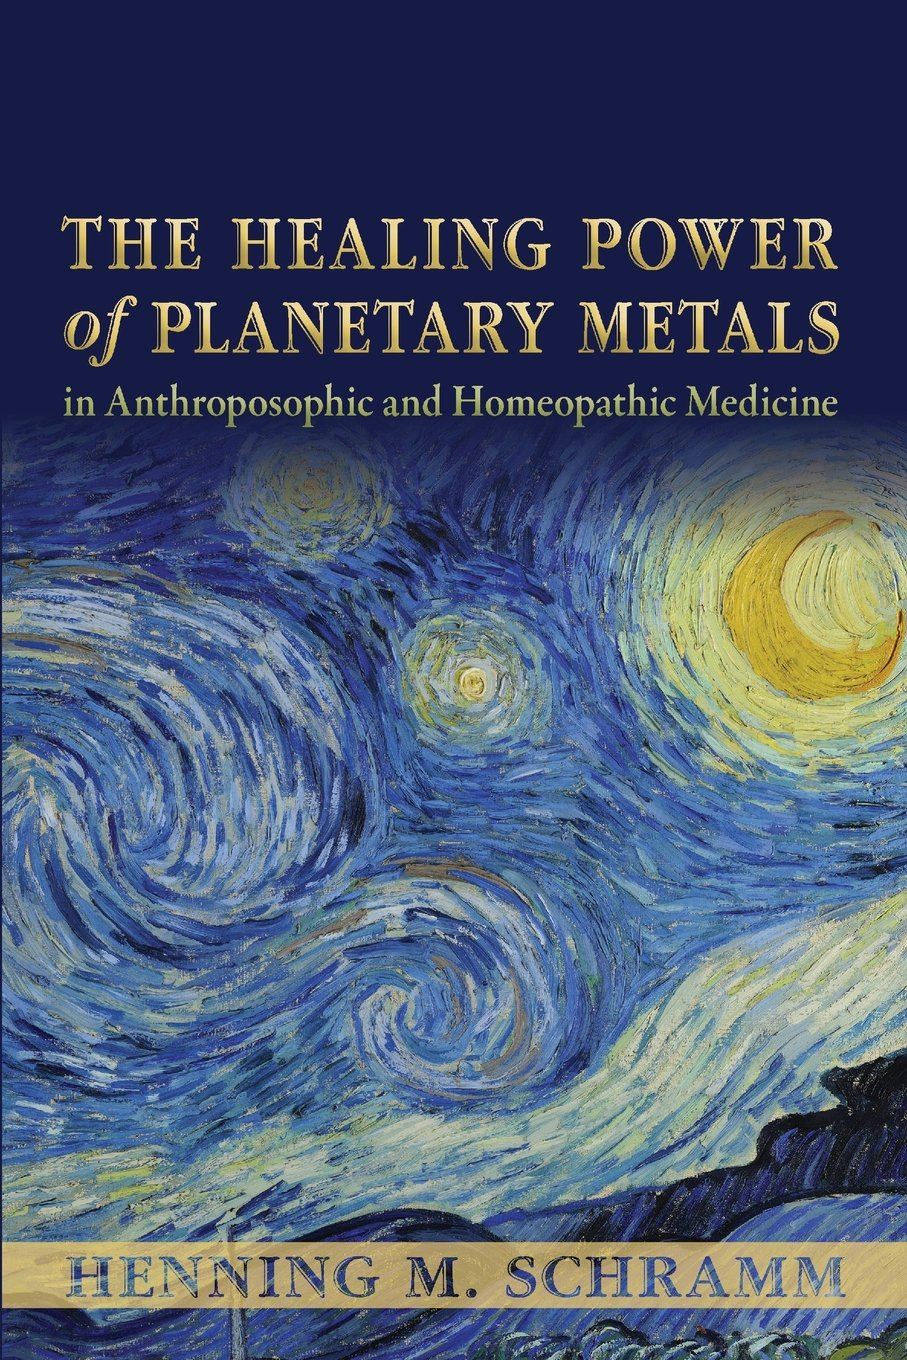 The Healing Power Of Planetary Metals In Anthroposophic And Homeopathic Medicine